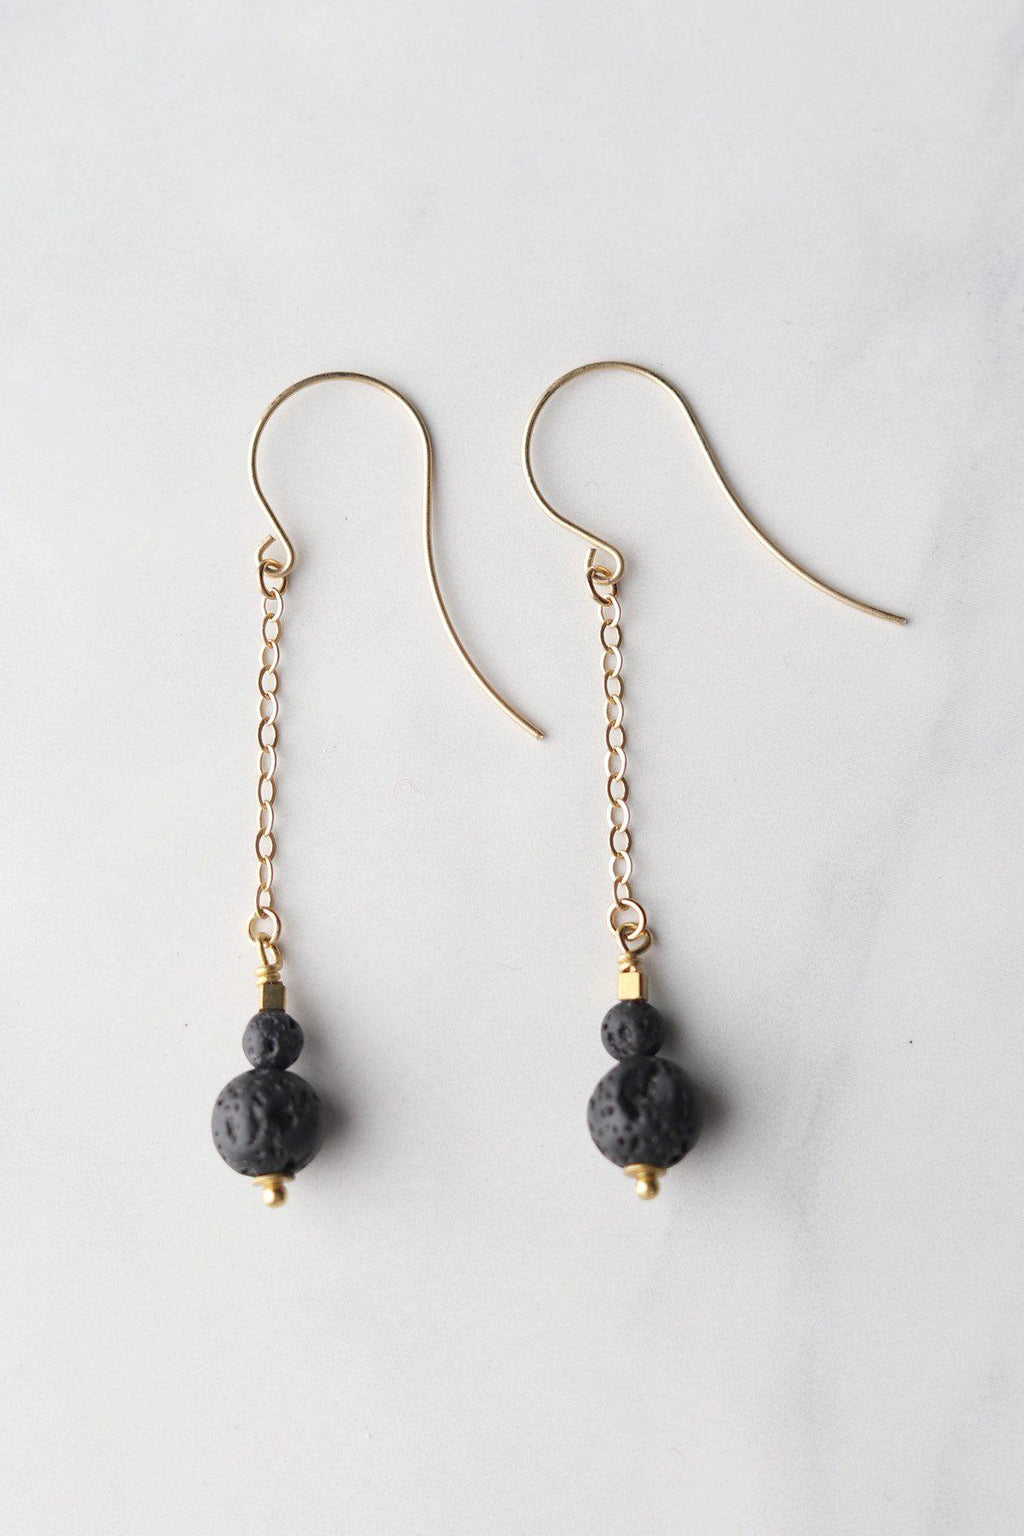 Lavastone Apothecary Earrings / Gold - Gallery 512 Boutique